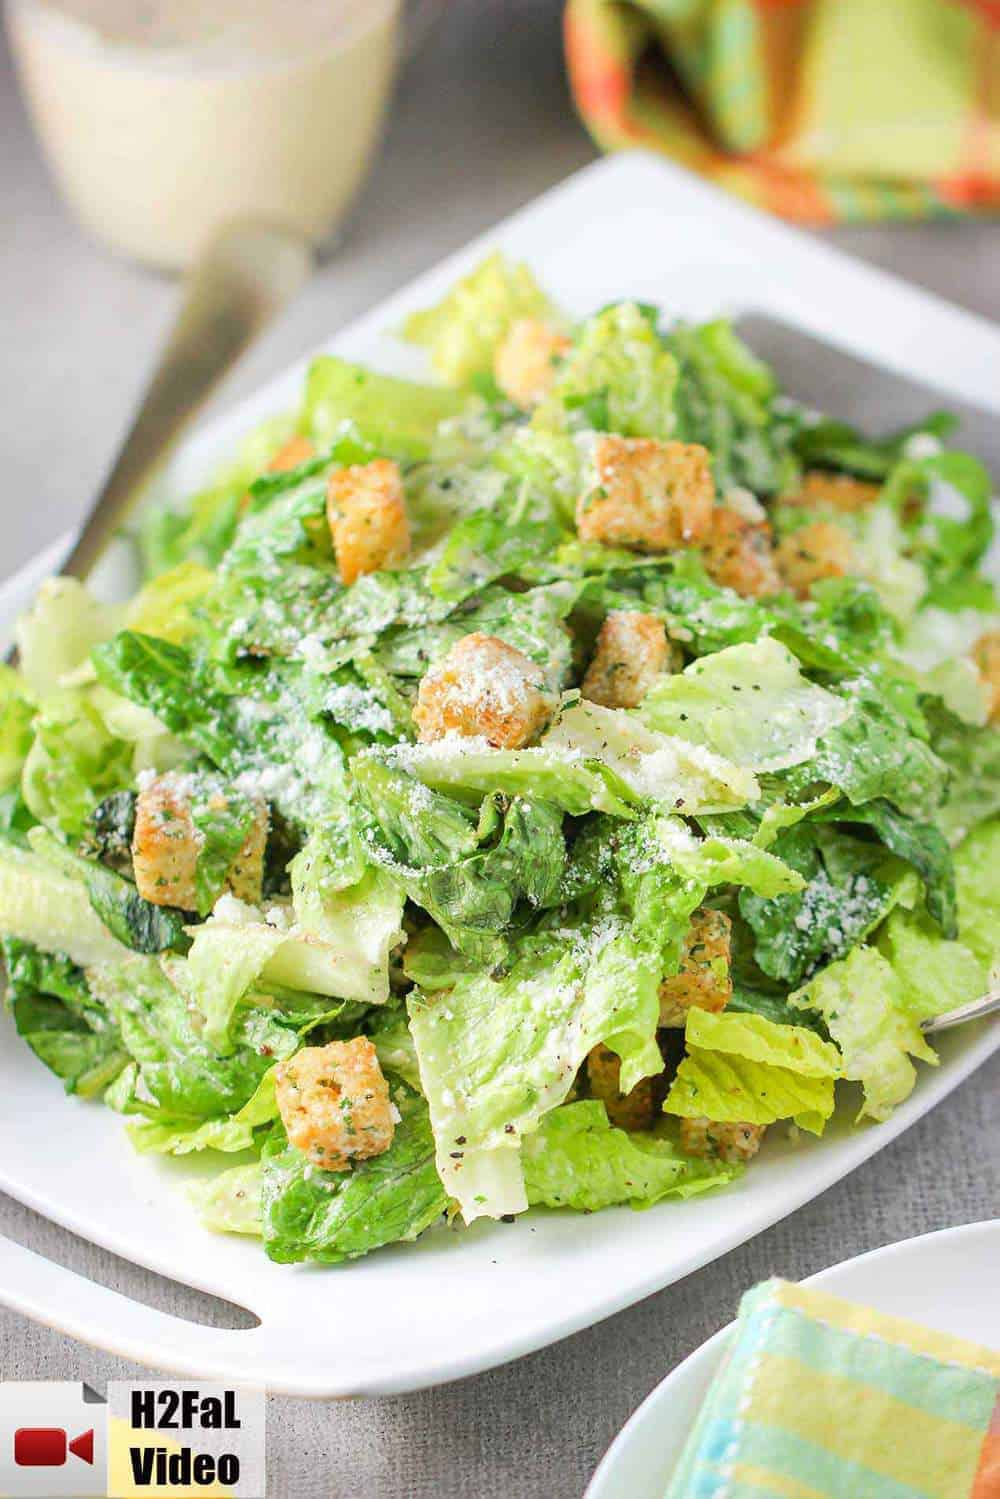 A large Caesar salad on a white plate with a colorful napkin nearby.